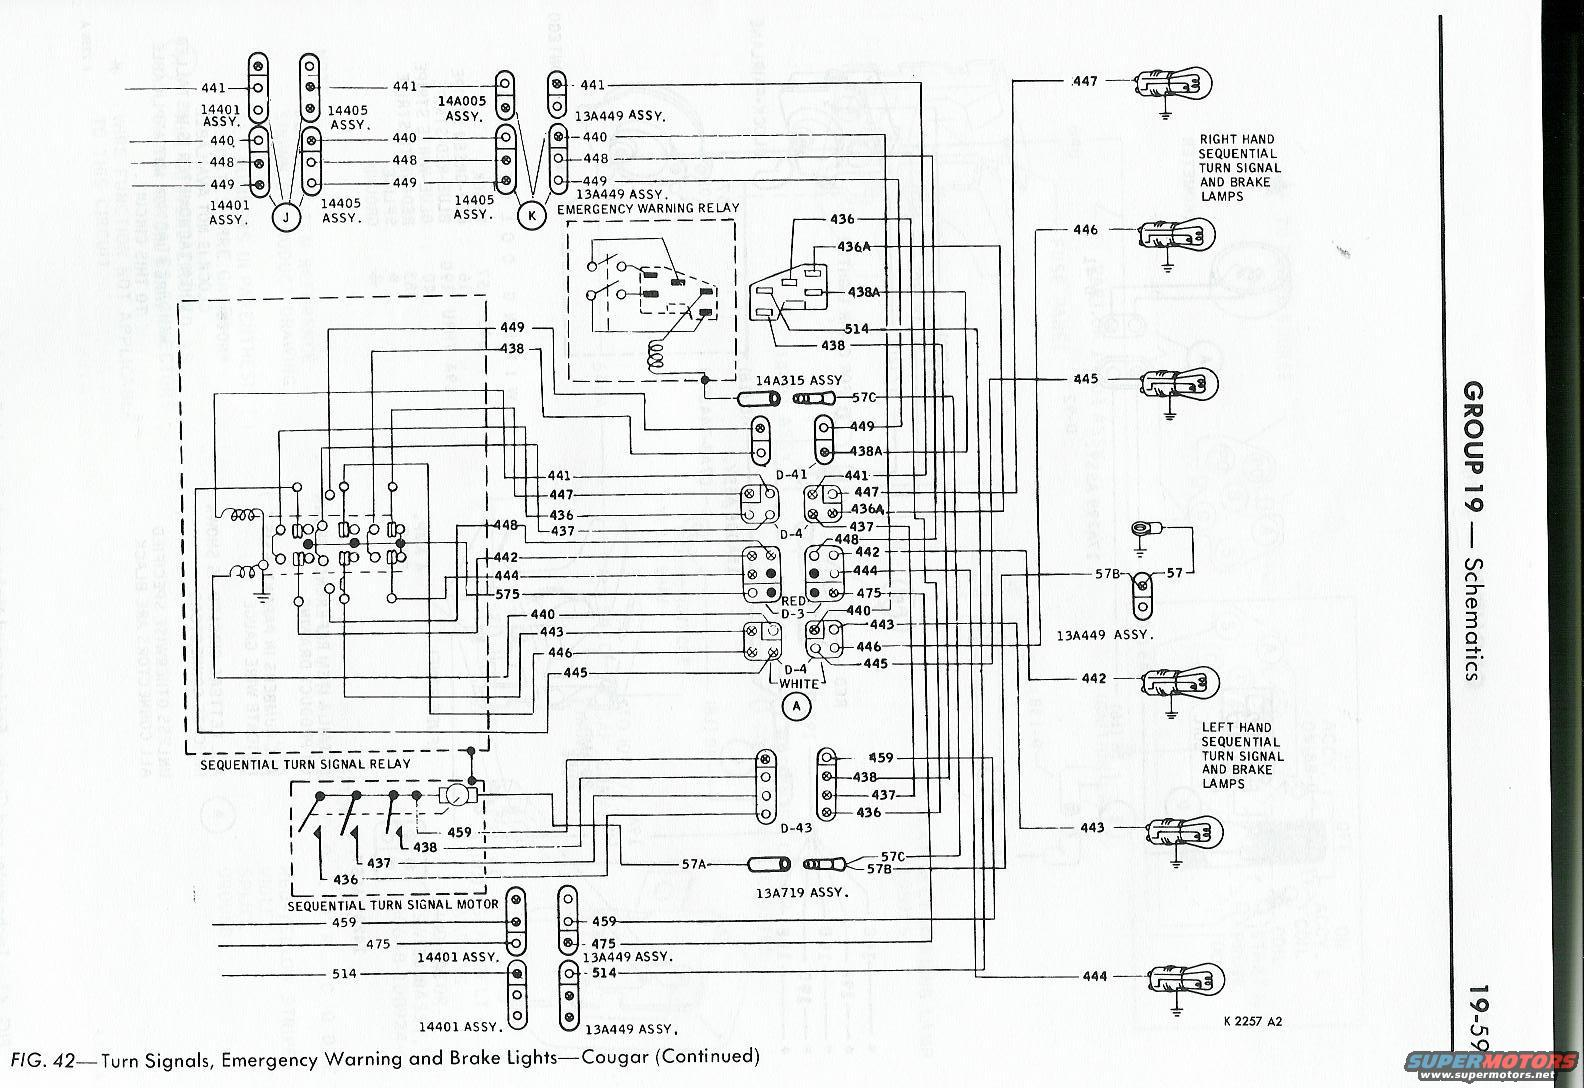 1968 mustang turn signal wiring diagram   39 wiring diagram images